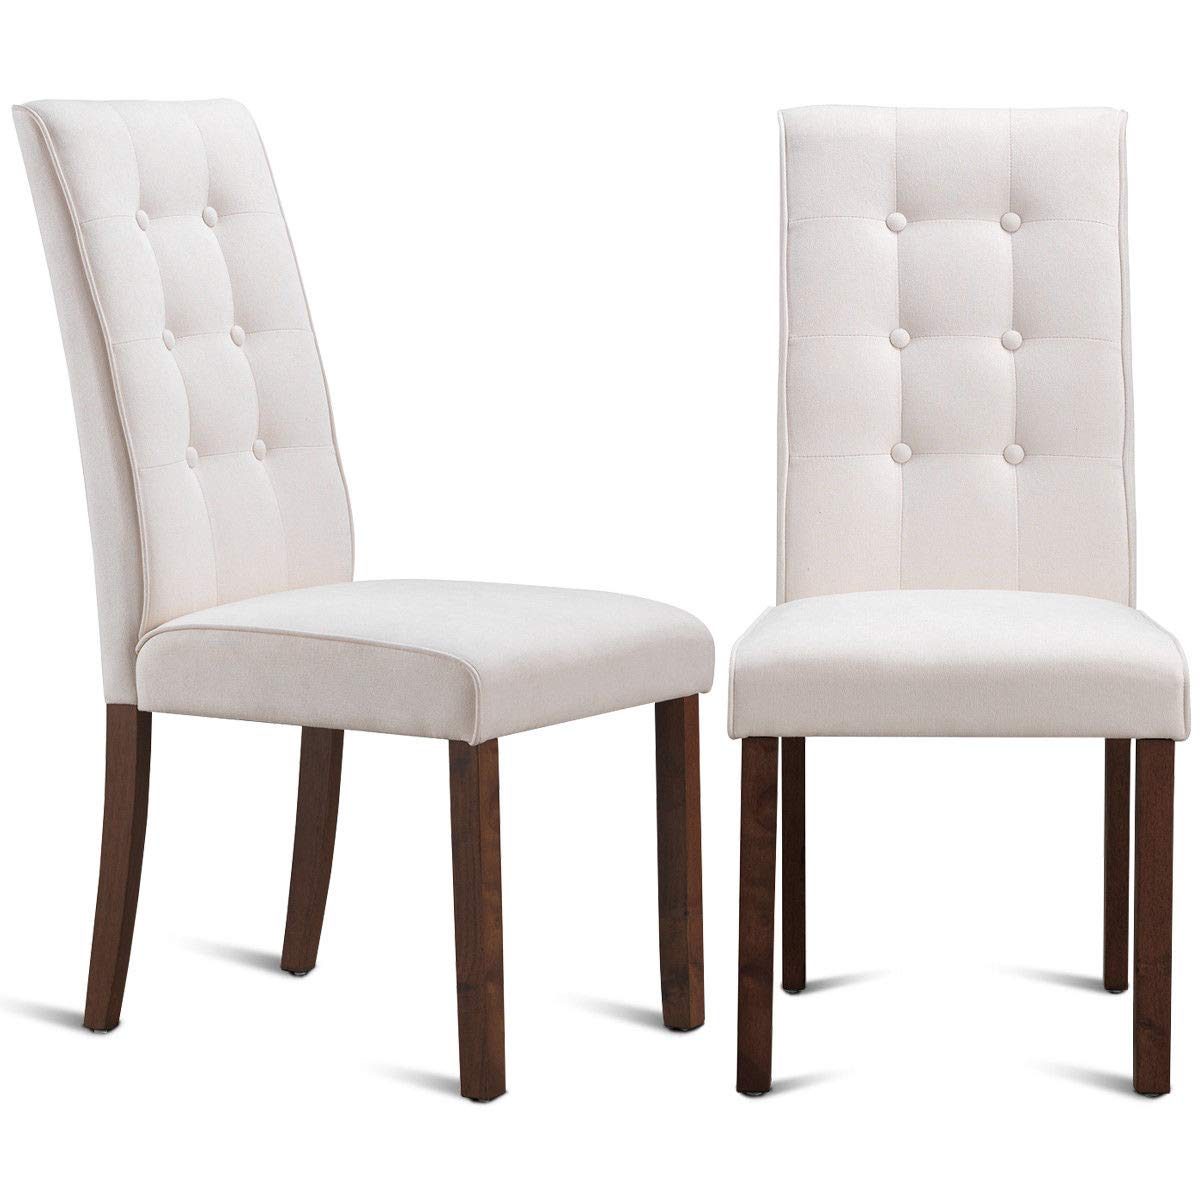 Giantex set of 2 dining chairs with sturdy wood frame and tufted back high back upholstered home living room dining room furniture dining chair set